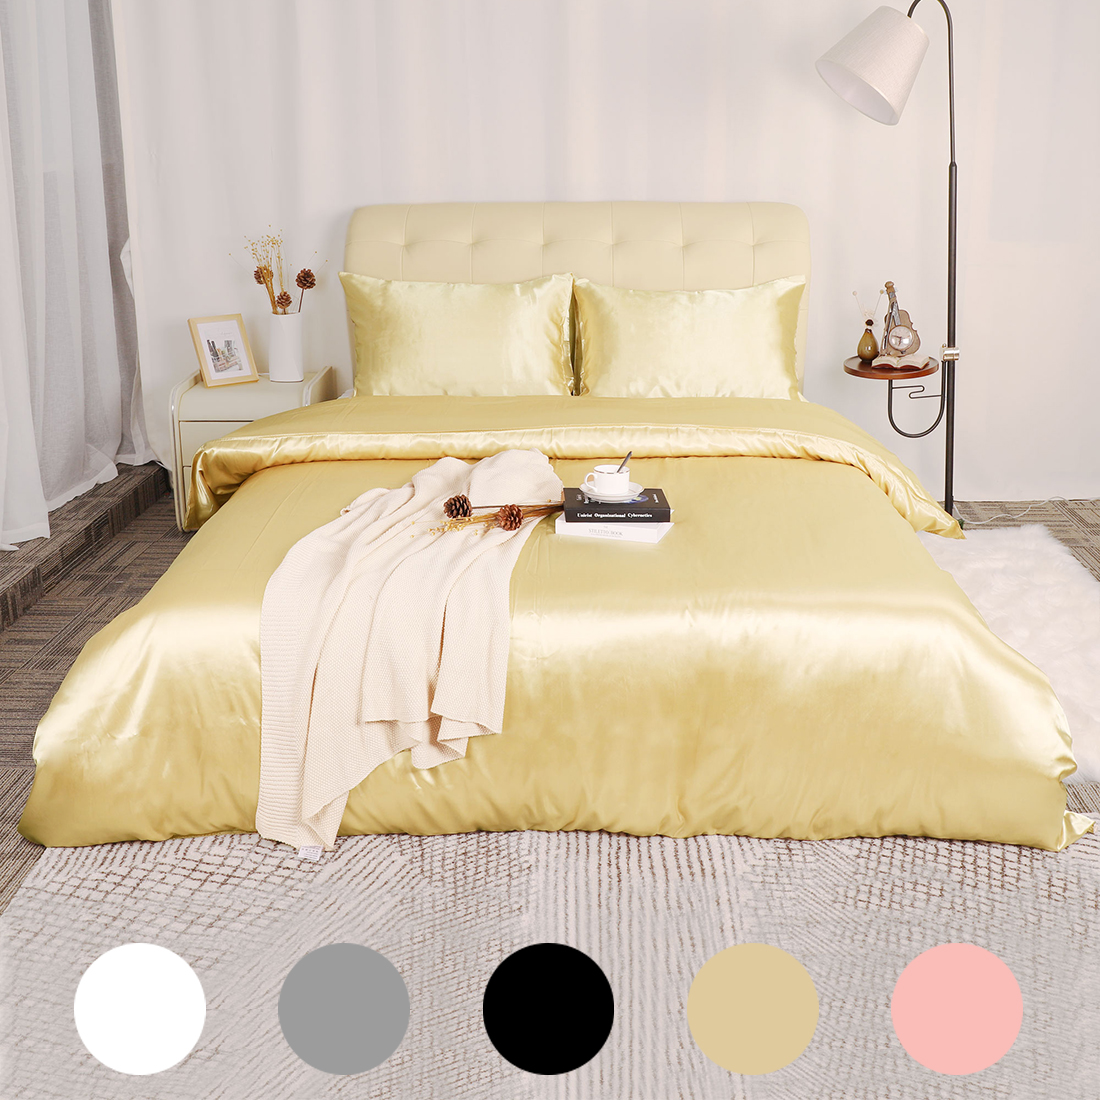 3-Piece-Home-Bedding-Satin-Silk-Duvet-Cover-Set-for-Comforter-Blanket-Three-Size